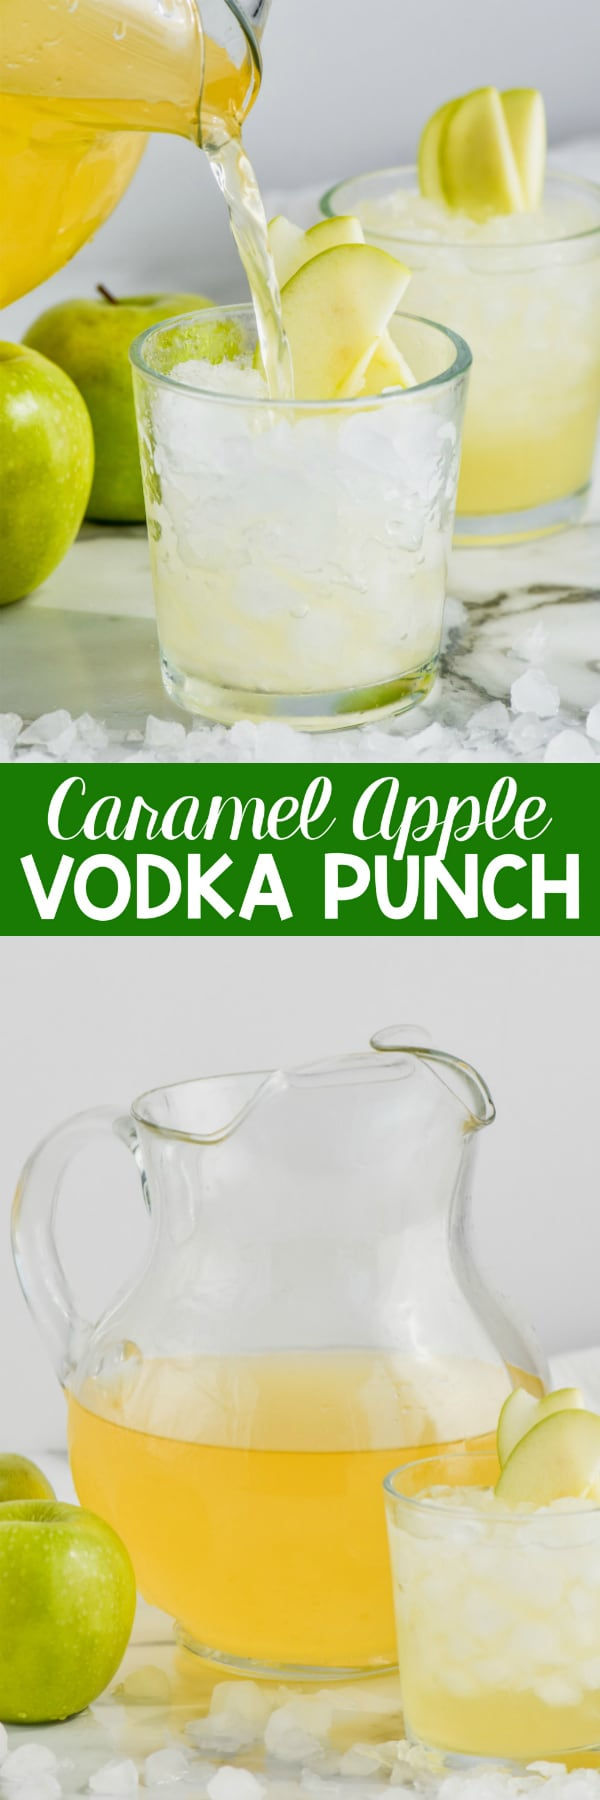 caramel apple vodka punch being poured into a glass of ice garnished with sliced apples